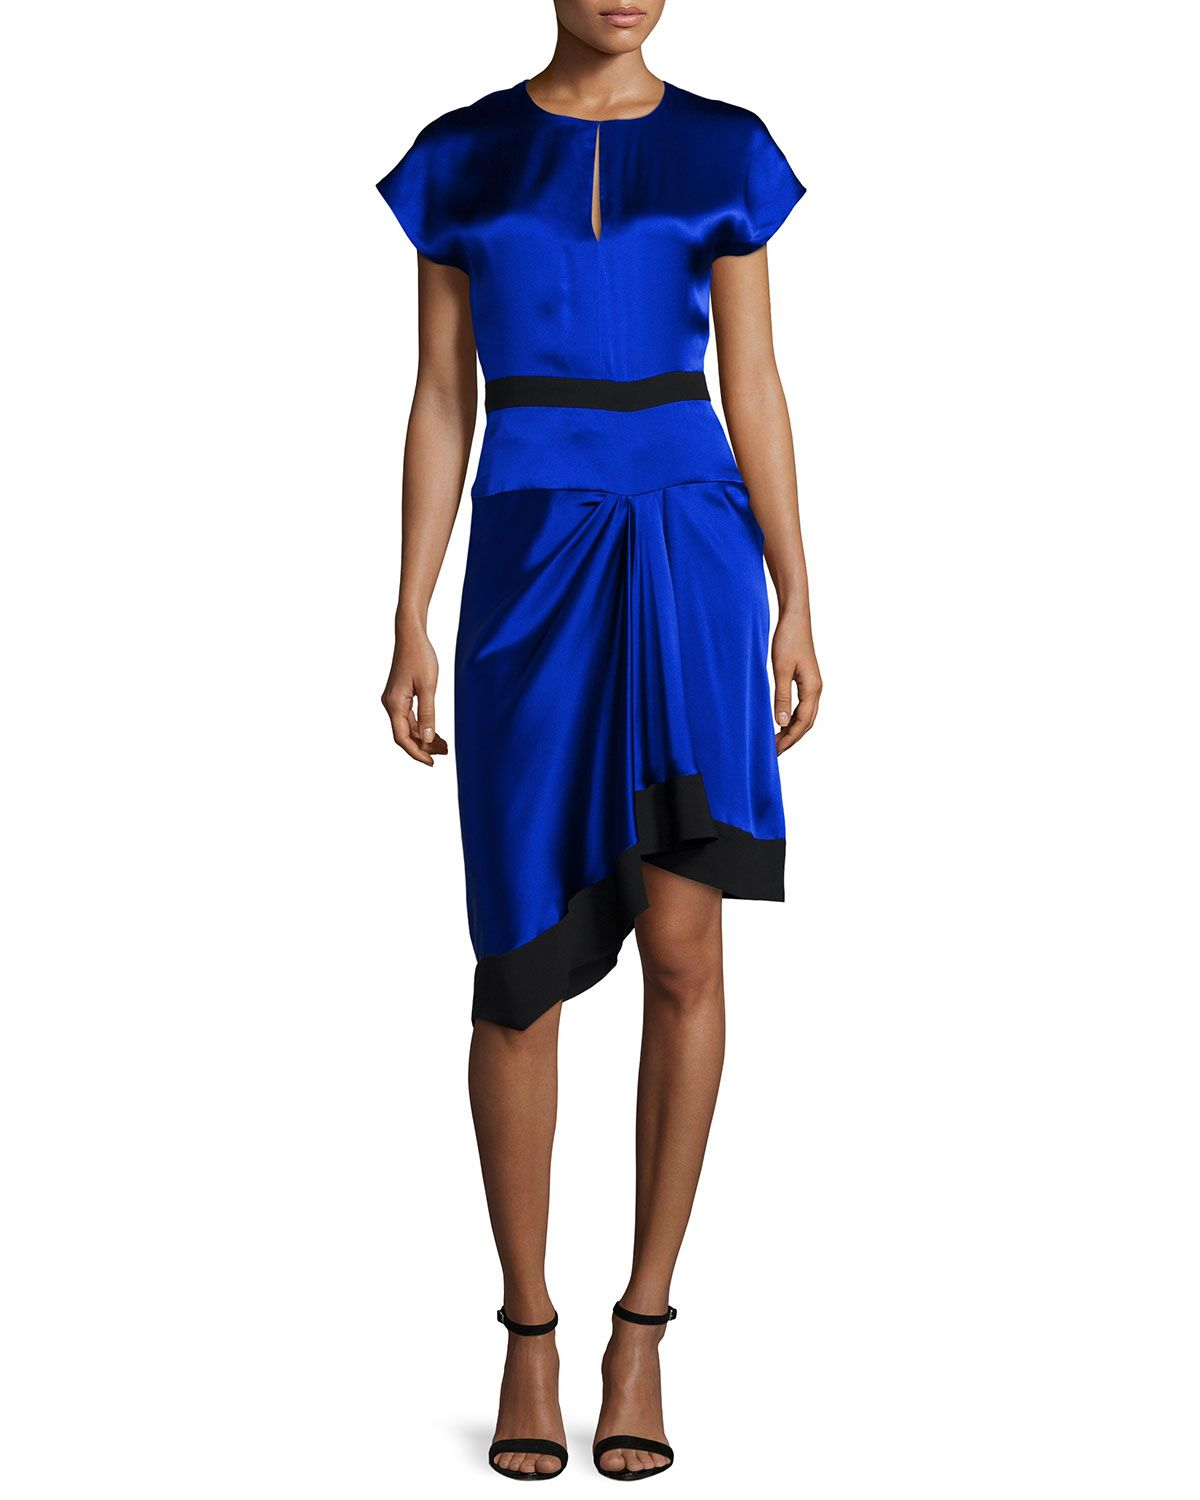 Short-Sleeve Two-Tone Dress, Imperial Blue